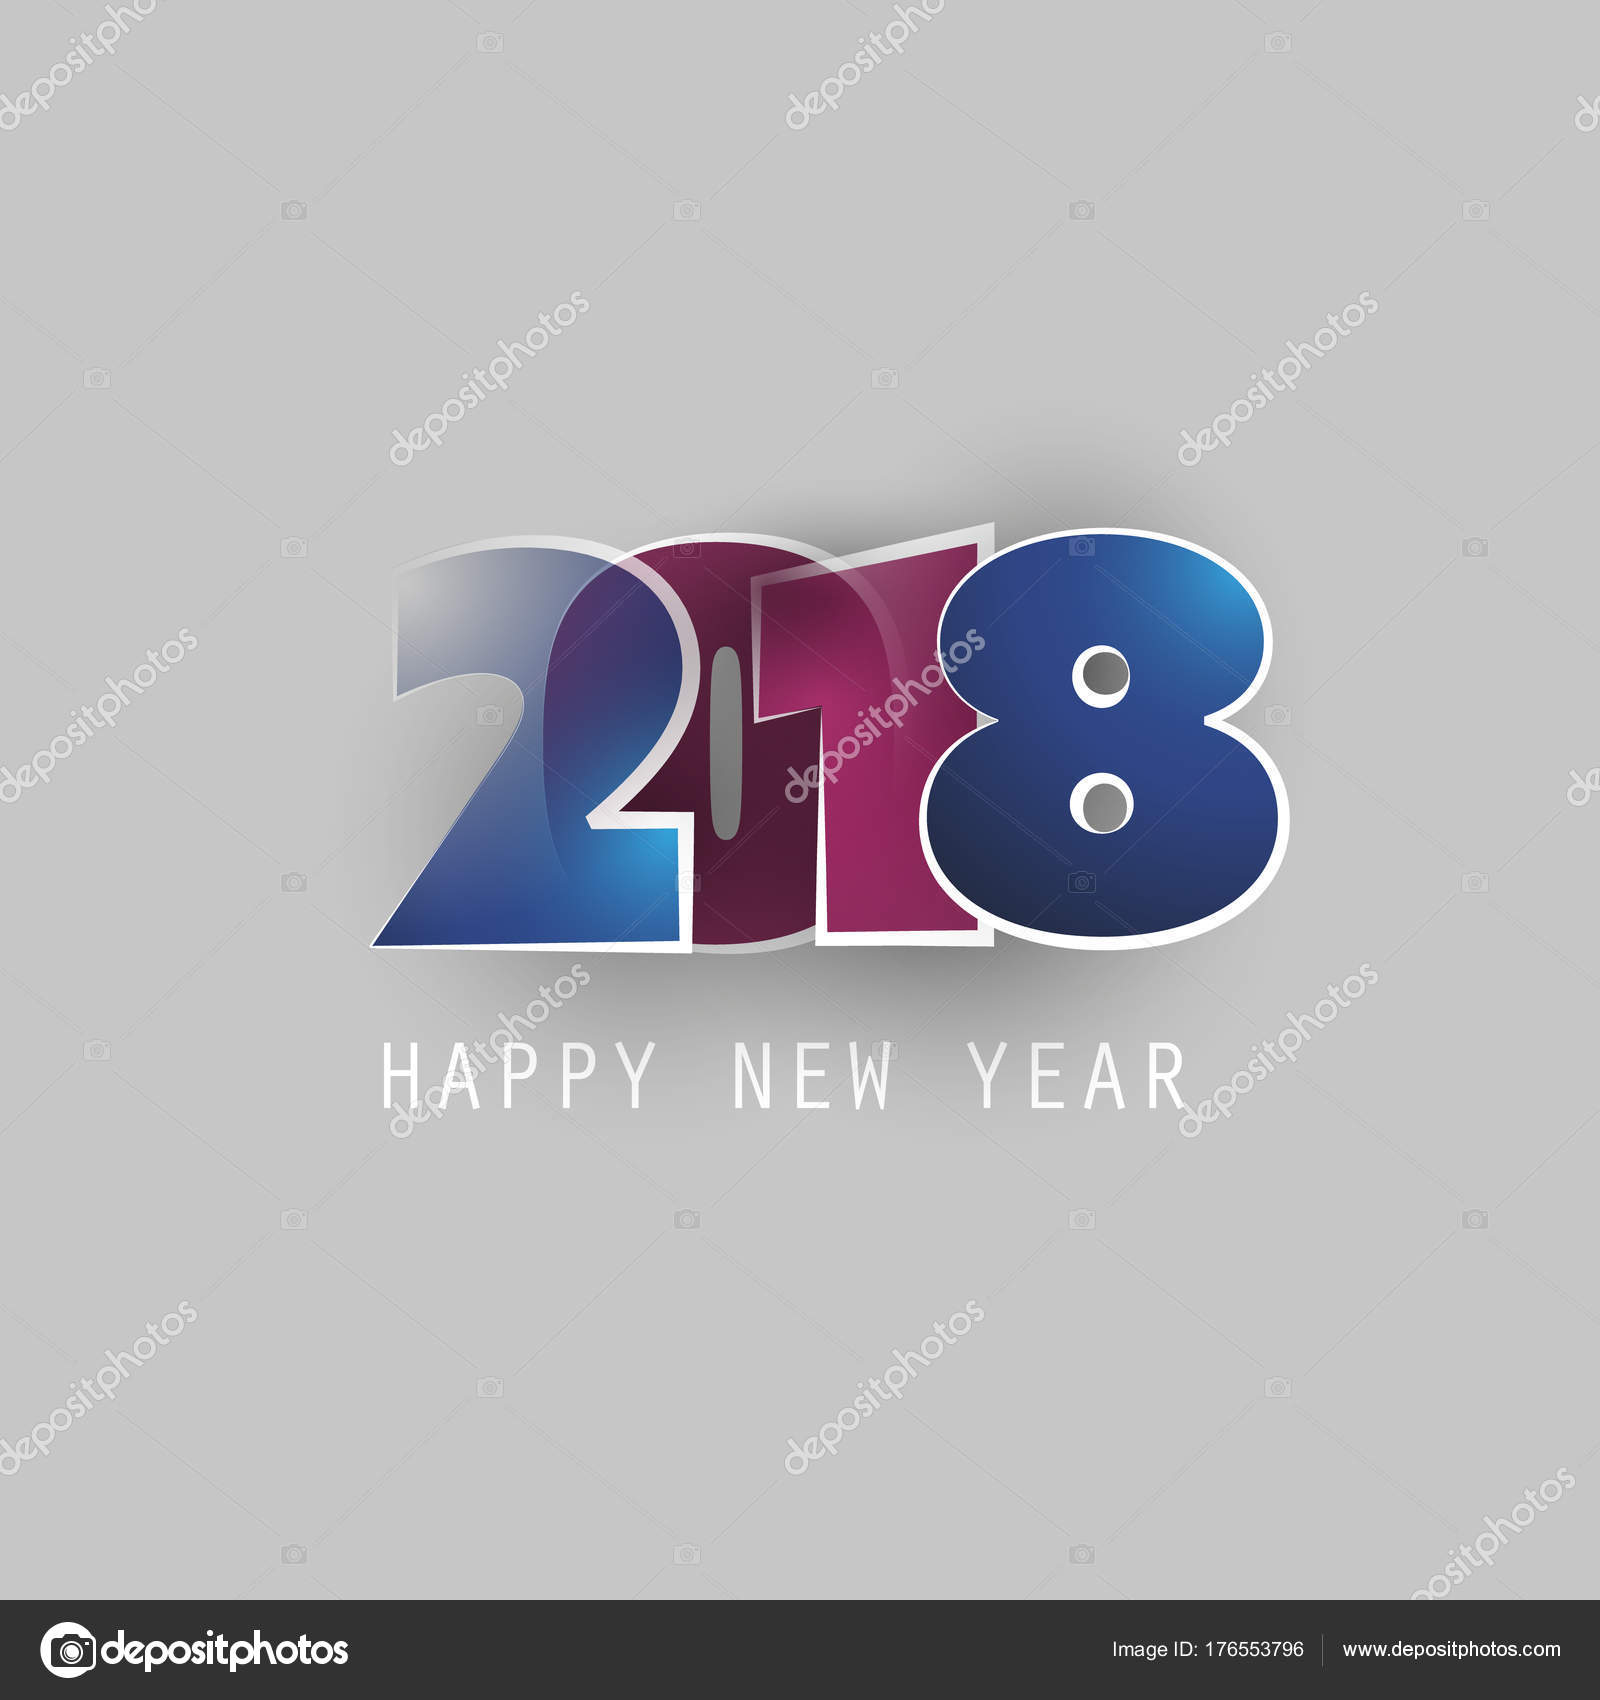 Best Wishes - Abstract Modern Style Happy New Year Greeting Card or ...